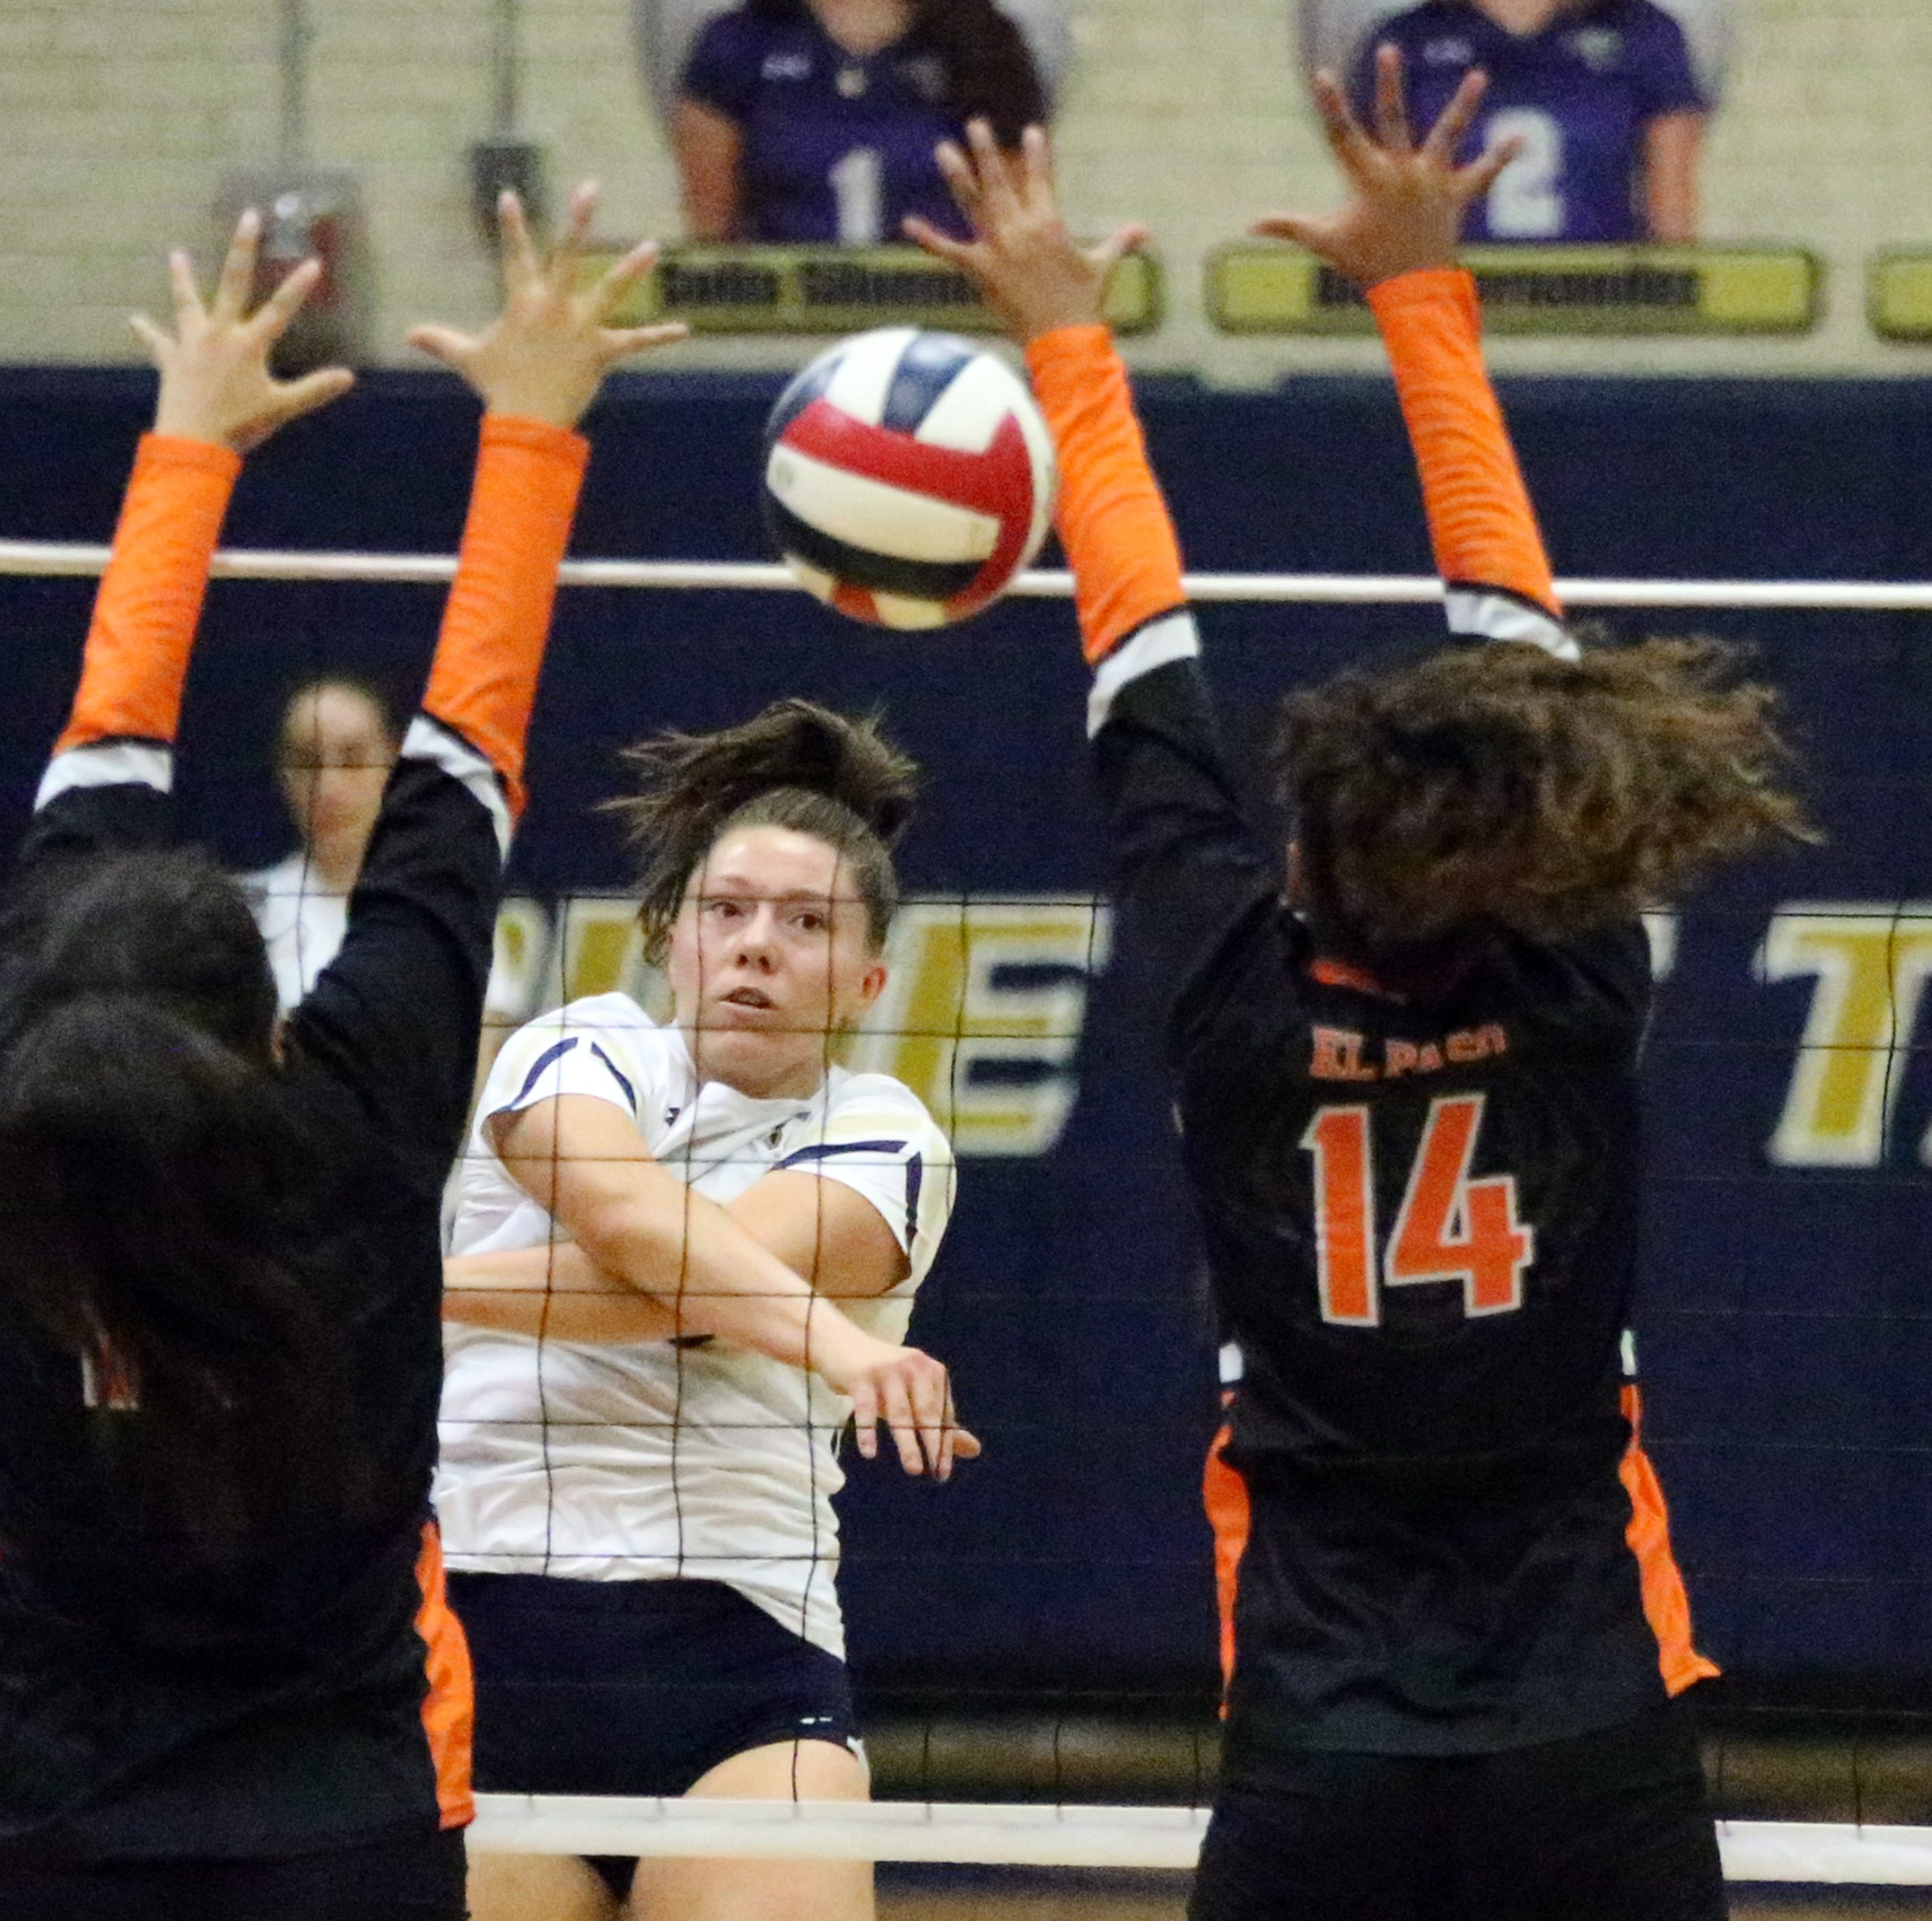 Alyssa Heist, center, fires the ball past El Paso High defenders, including Laura Barrios Bardi, 14, on Tuesday night at Coronado.